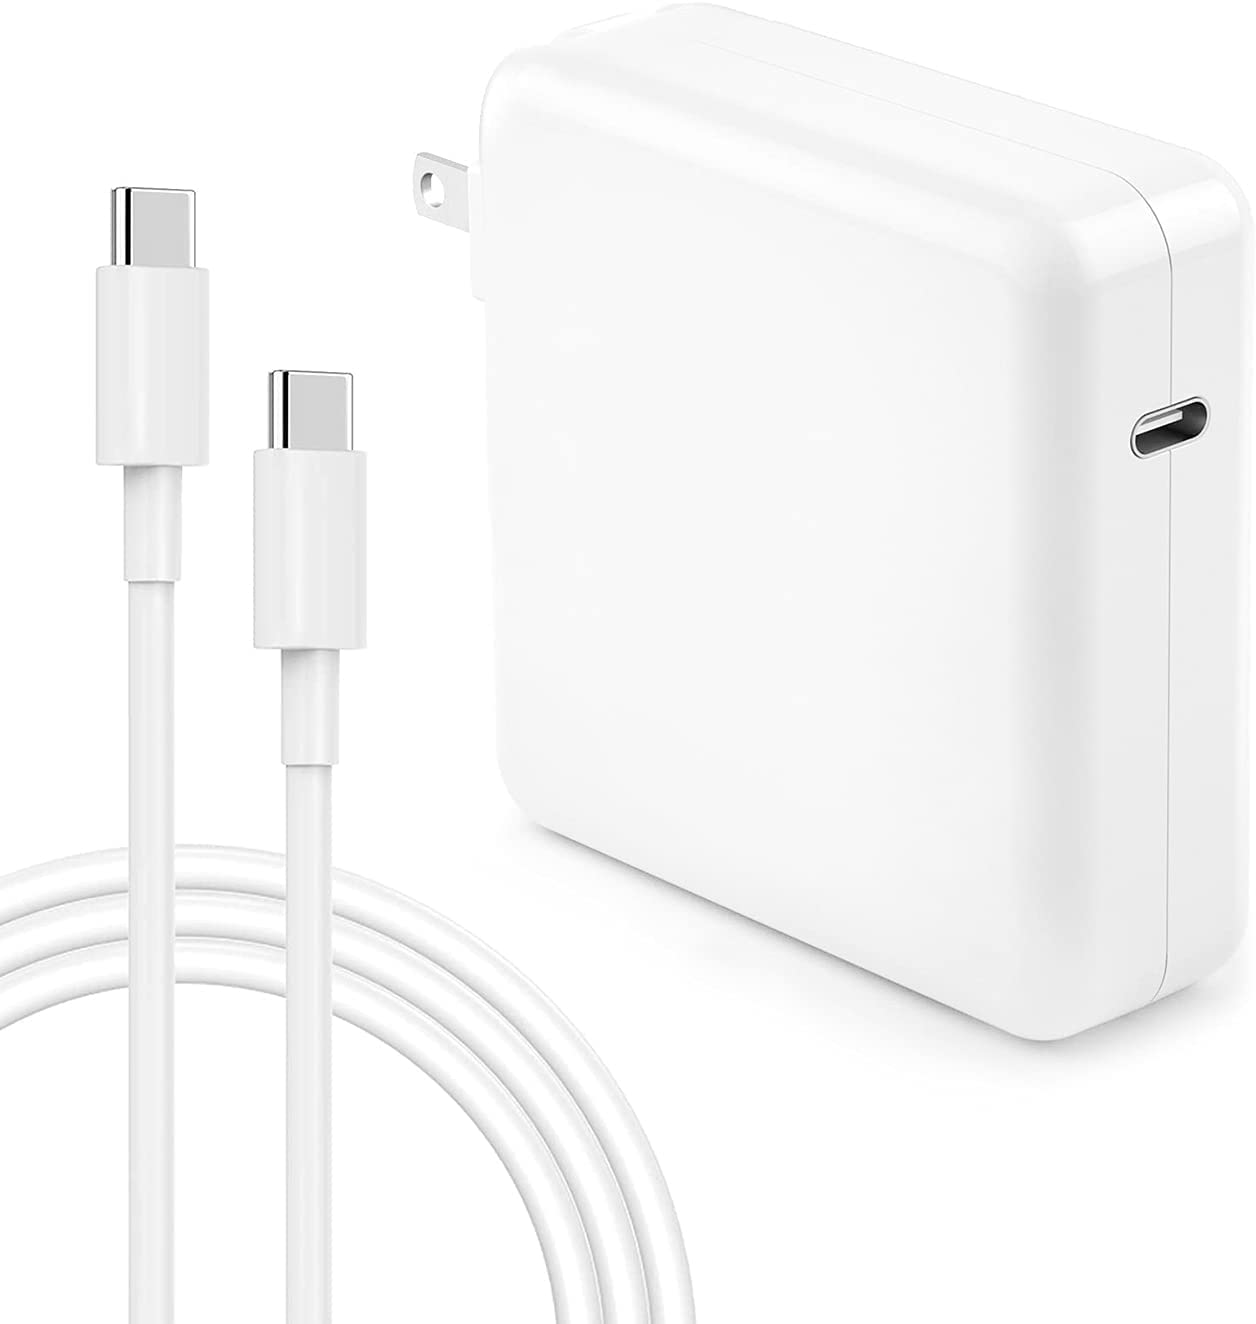 Mac Book Pro Charger - 100W USB C Charger Power Adapter Compatible with MacBook Pro 16, 15, 13 Inch, MacBook Air 13 Inch, iPad Pro 2021/2020/2019/2018 and All USB C Device, 7.2ft USB C to C Cable